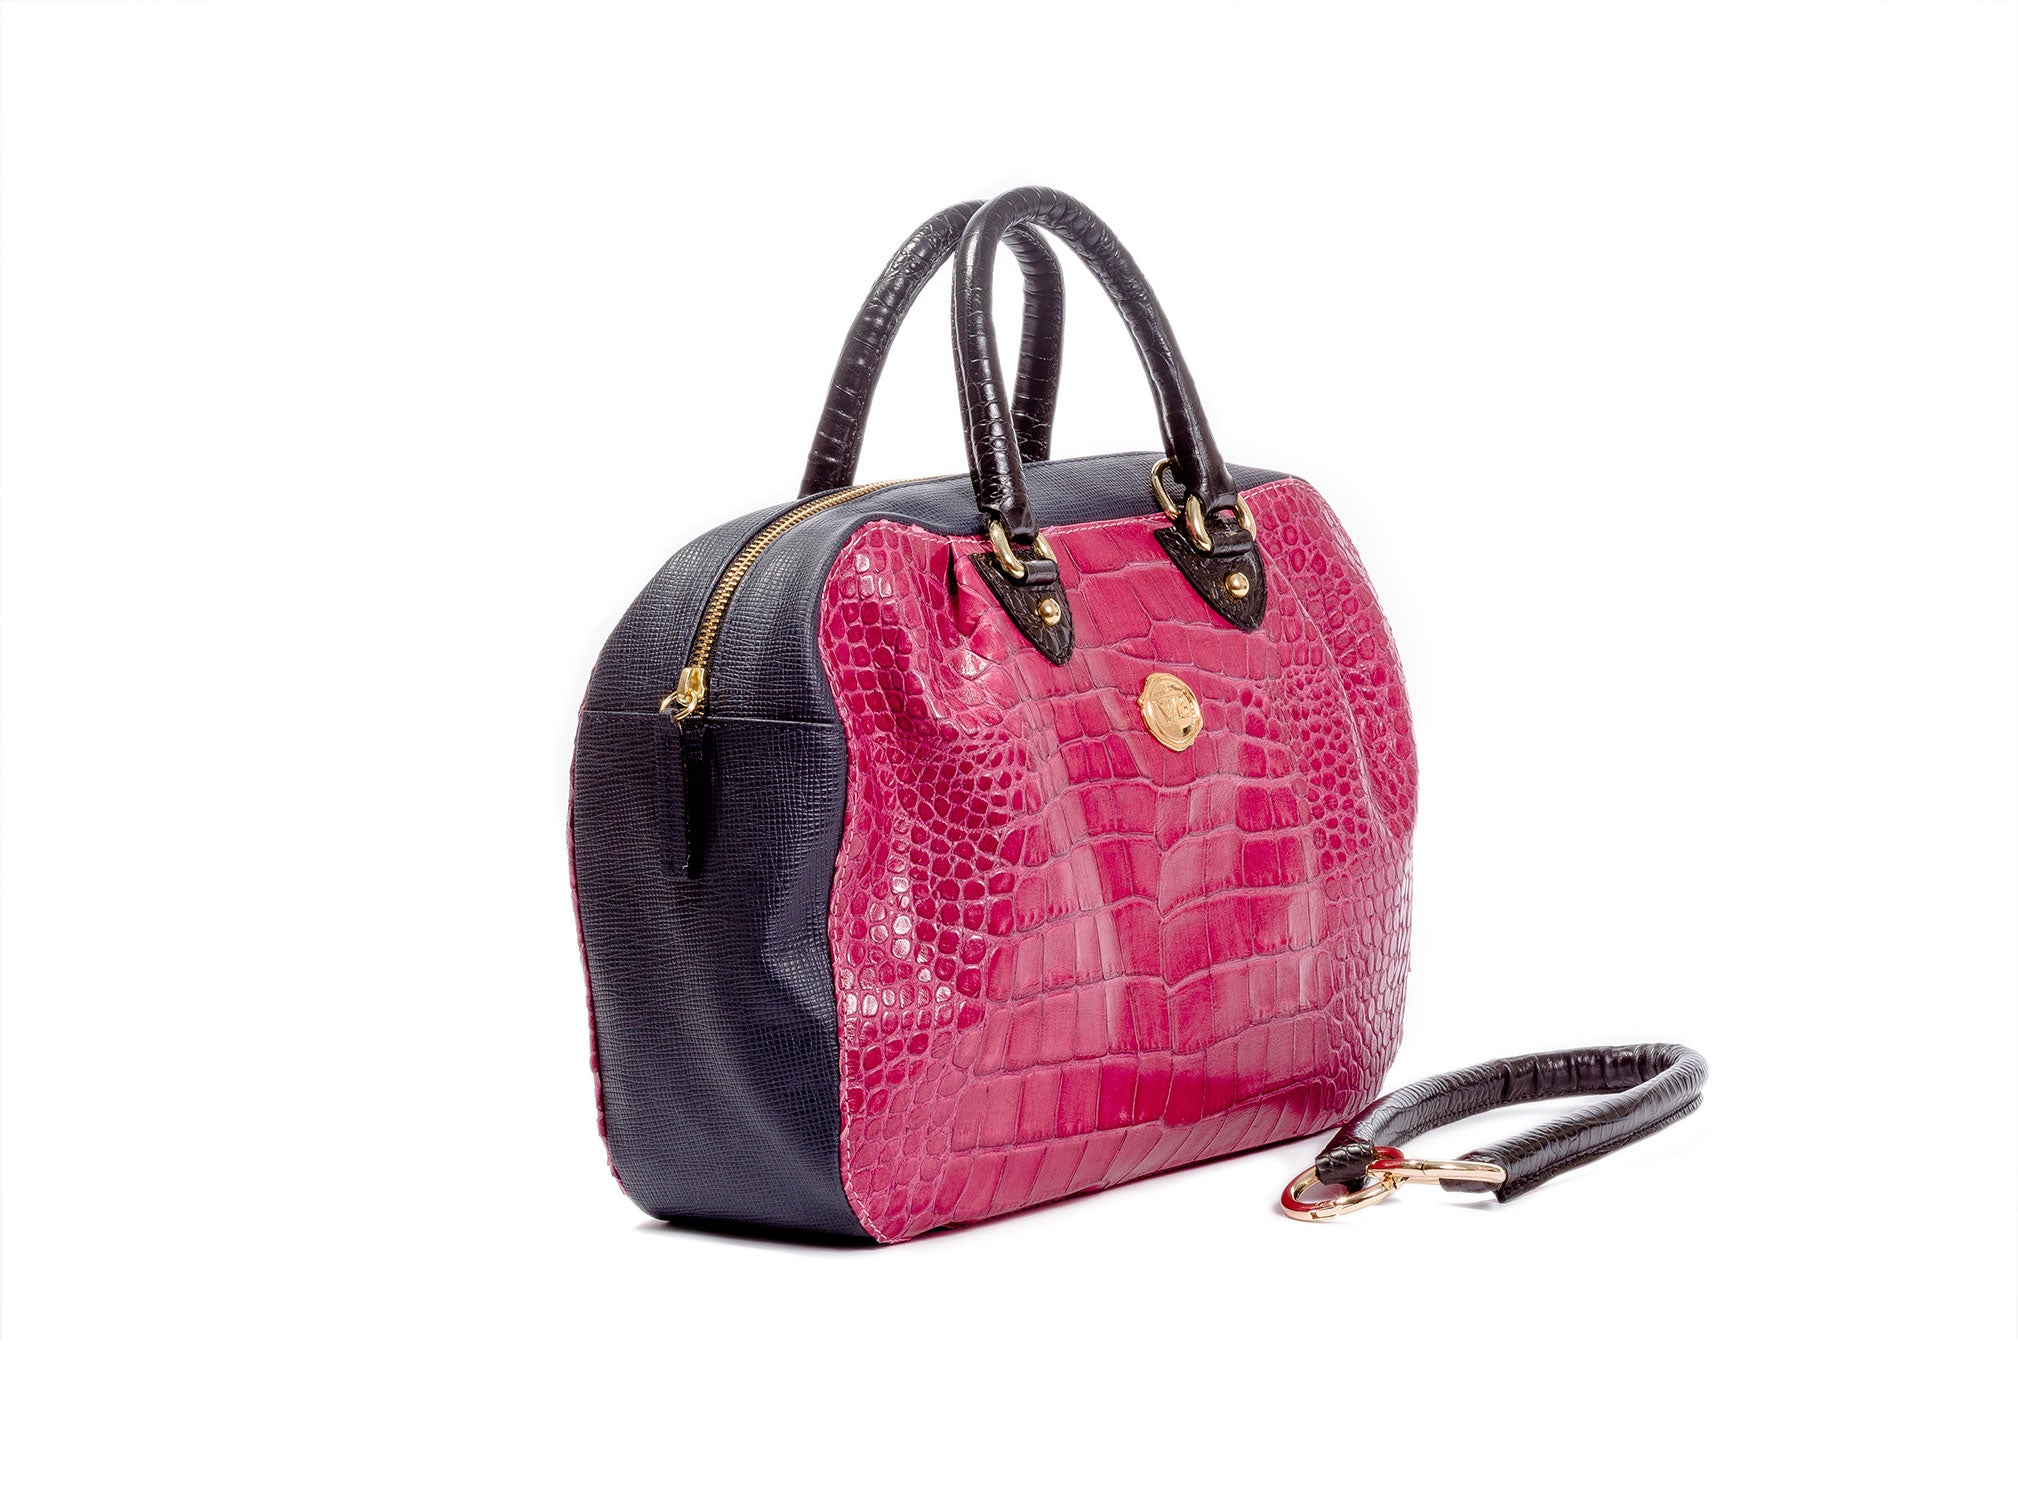 KALOS MEDIUM BAG RASPBERRY CROCODILE EFFECT CALF LEATHER